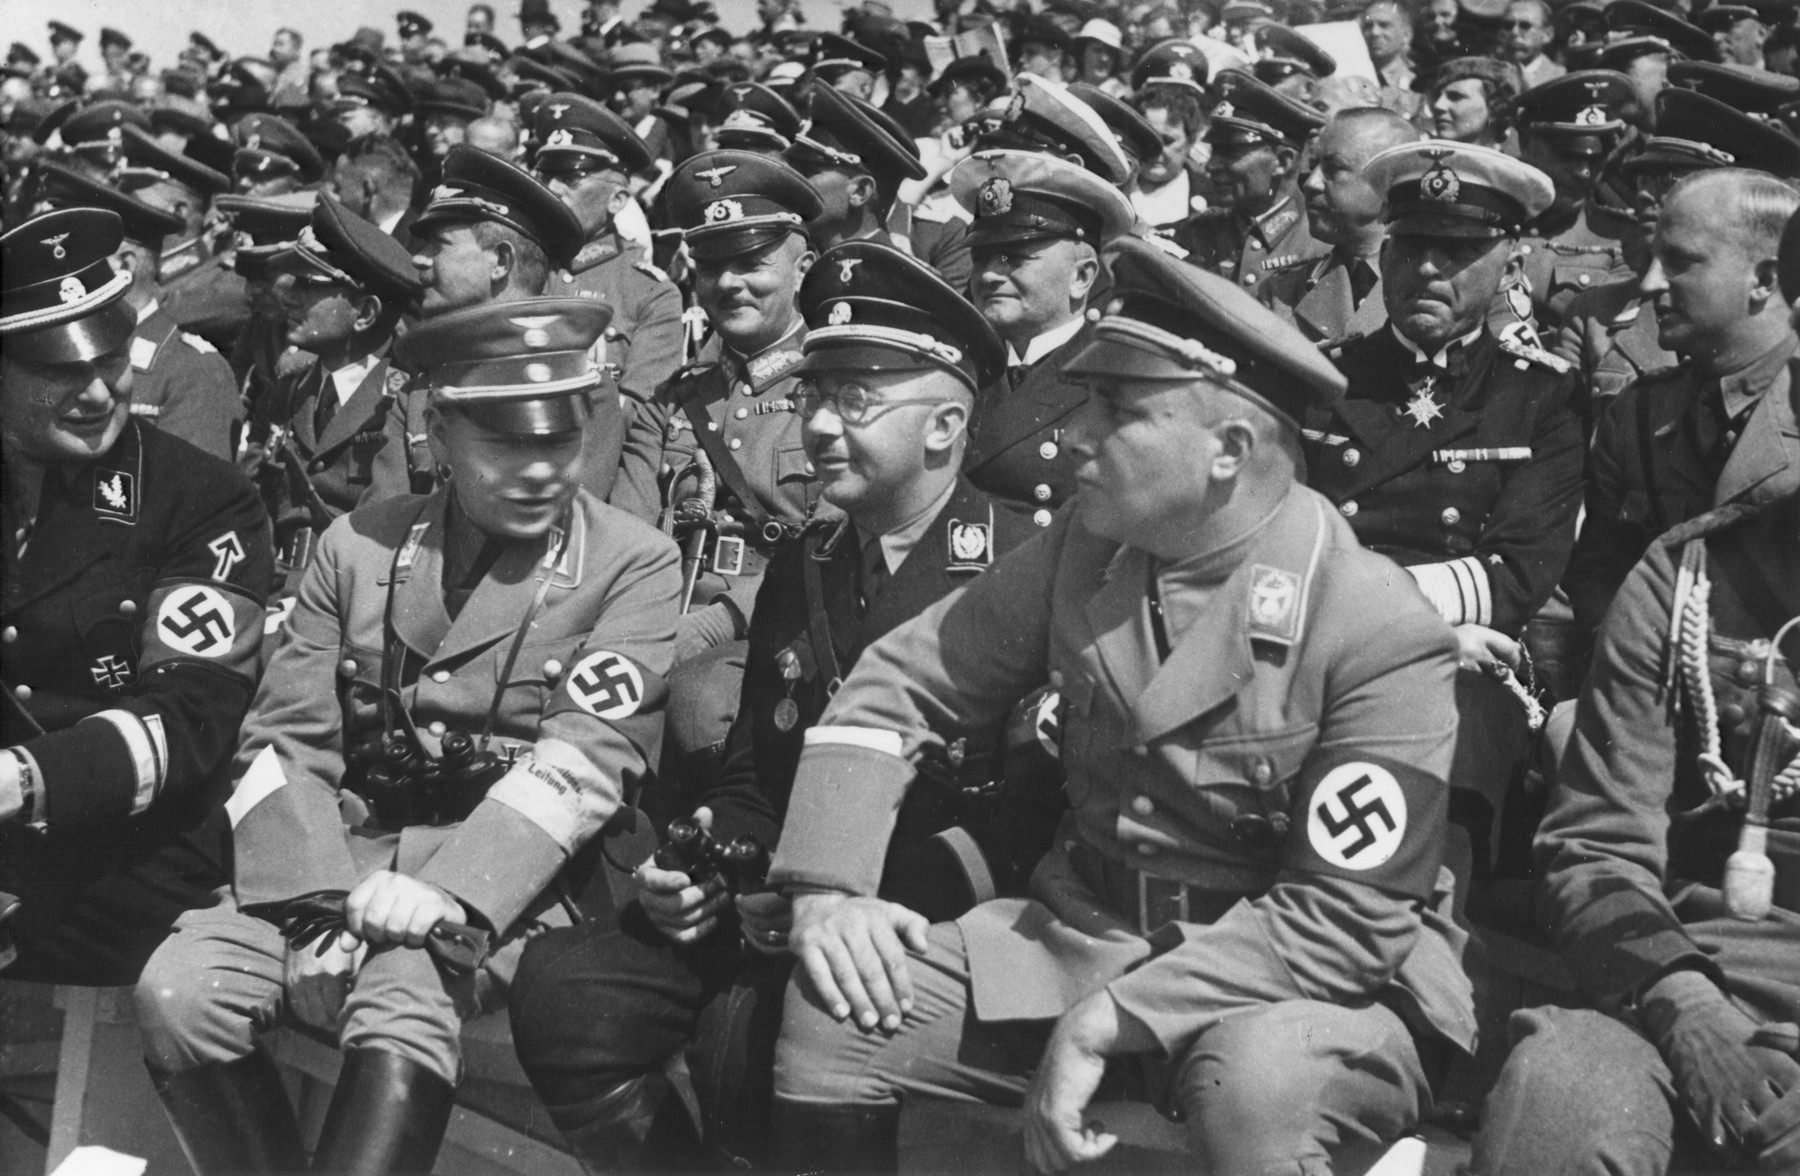 Heinrich Himmler sits in the audience during a Reichsparteitag (Reich Party Day) ceremony in Nuremberg.  Also pictured is Martin Bormann (front row, right) and Wilhem Keitel (second row, fourth from the left, behind and to the left of Himmler).